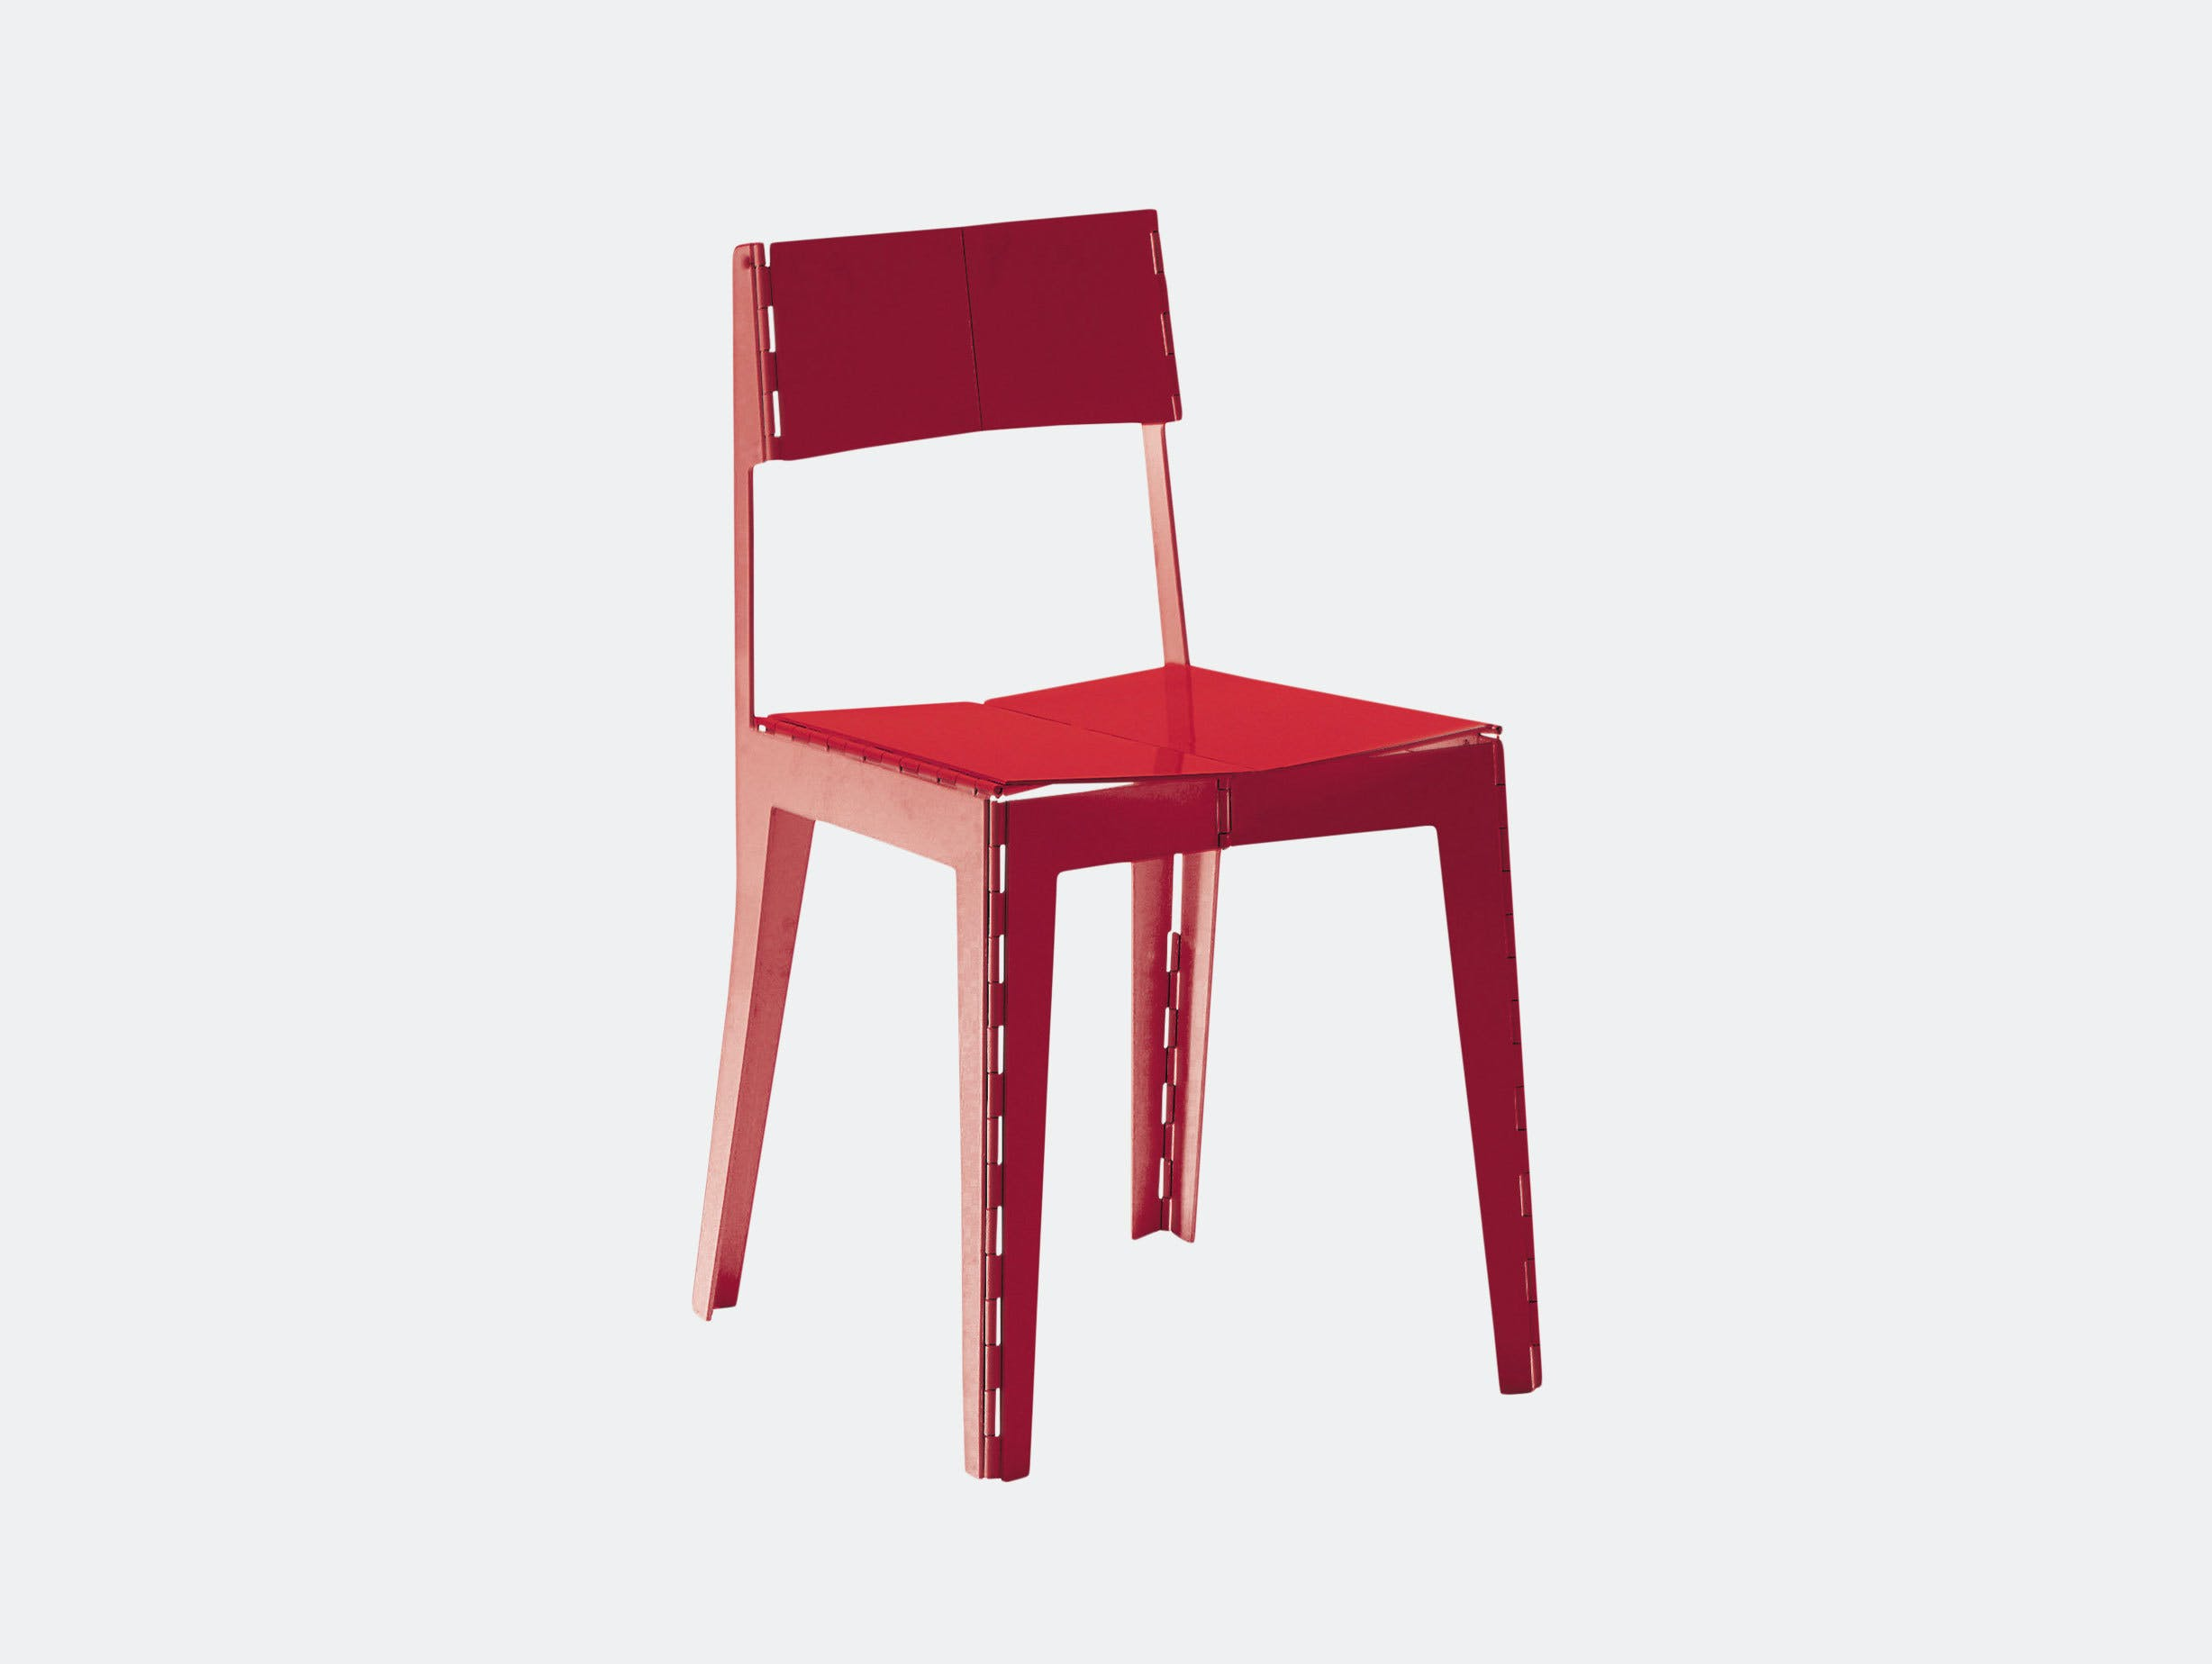 Stitch Chair image